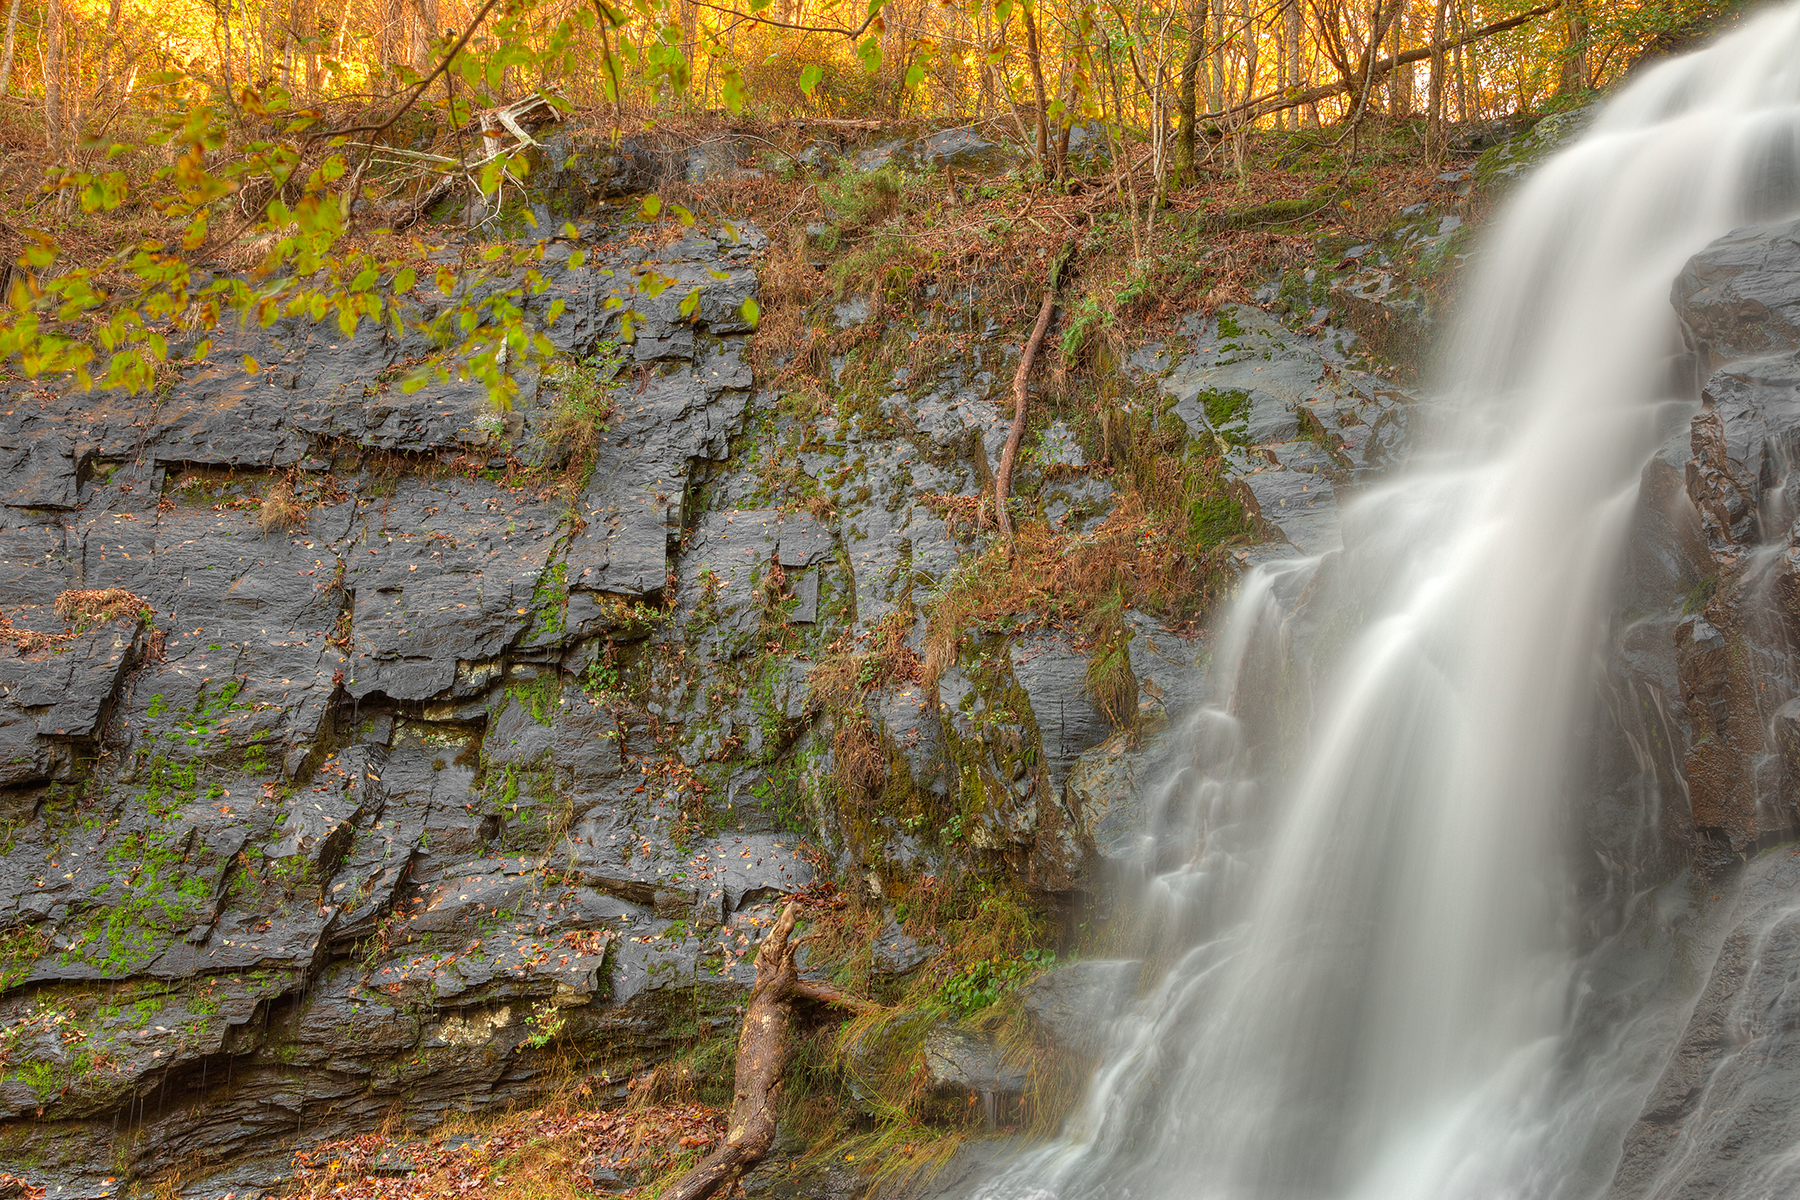 Jones run profile falls - hdr photo